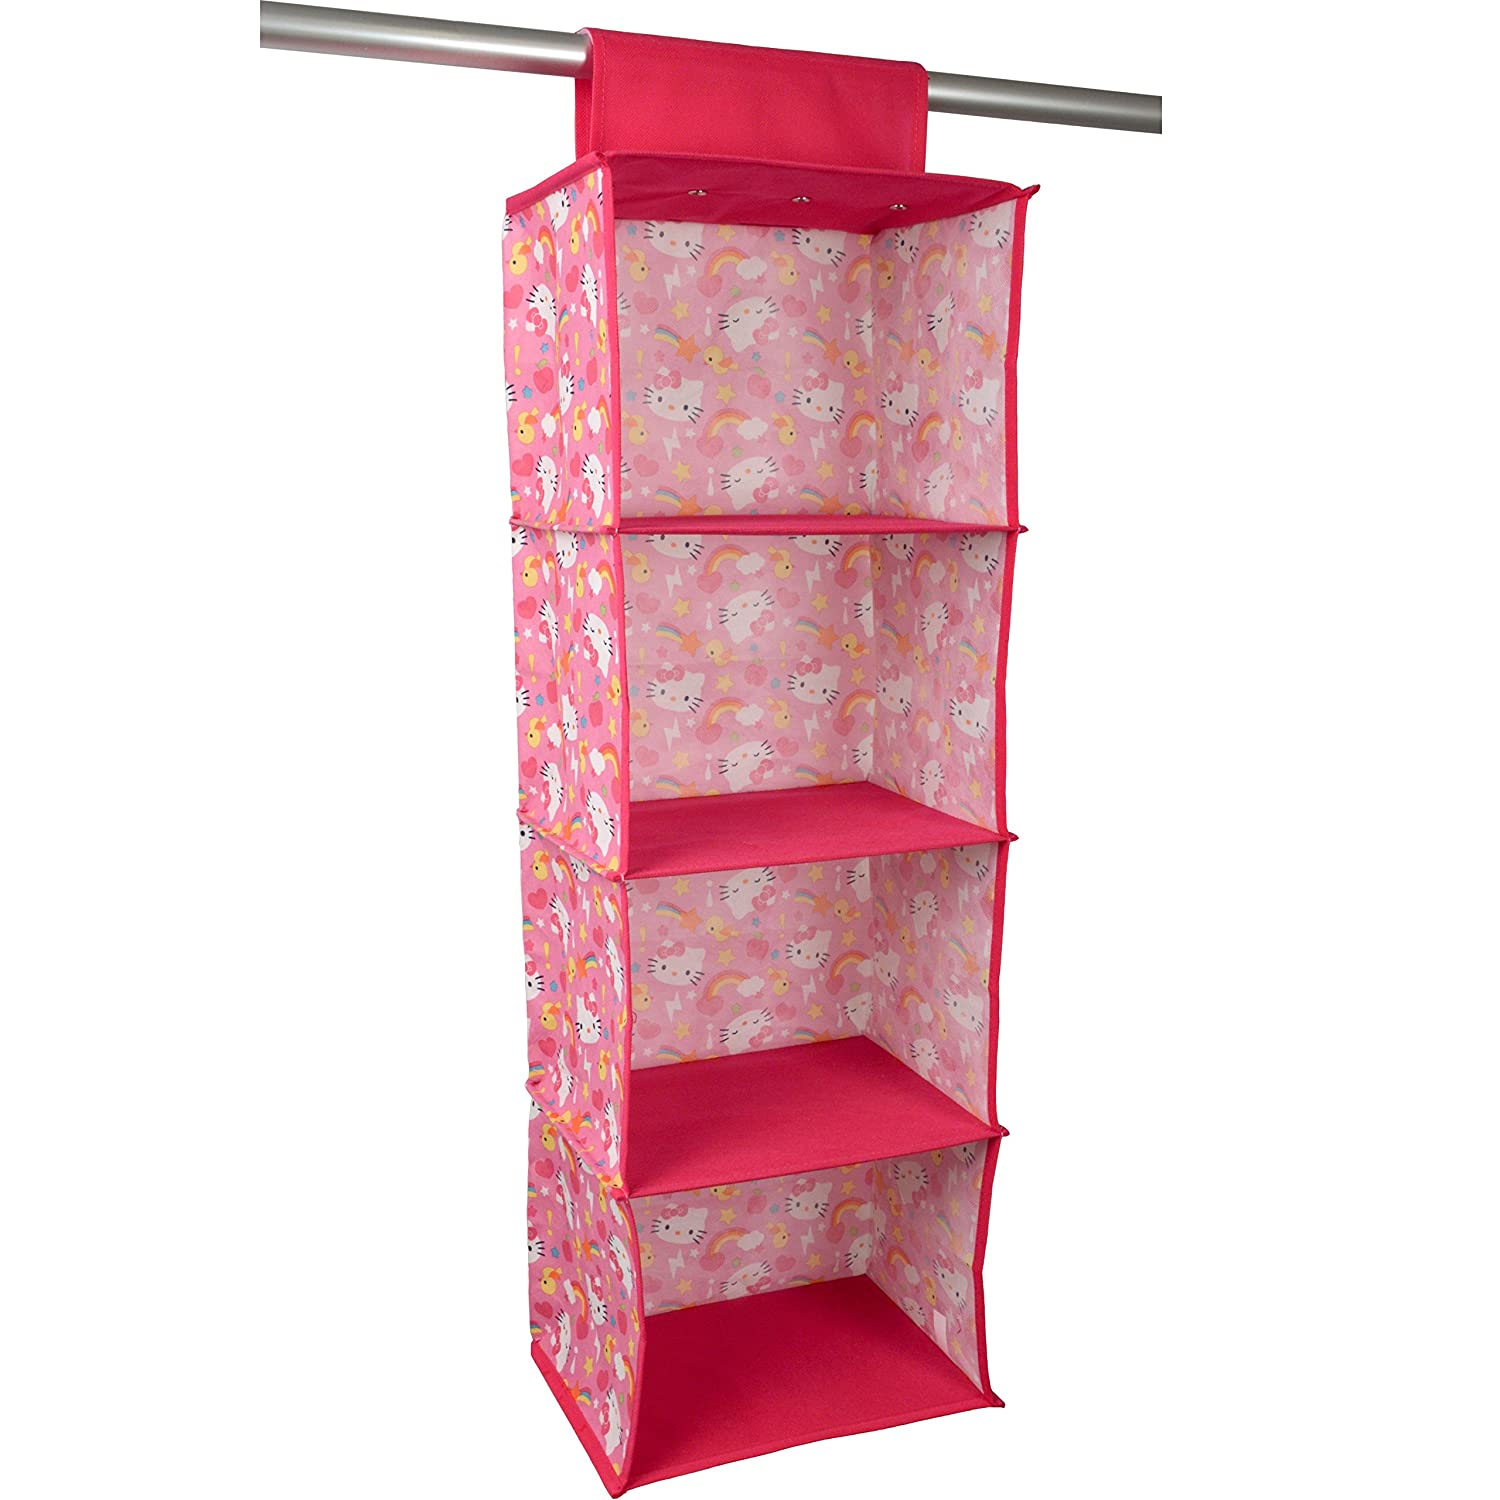 organizer standing hanging shelving closet system adjustable shelves vertical rod itm